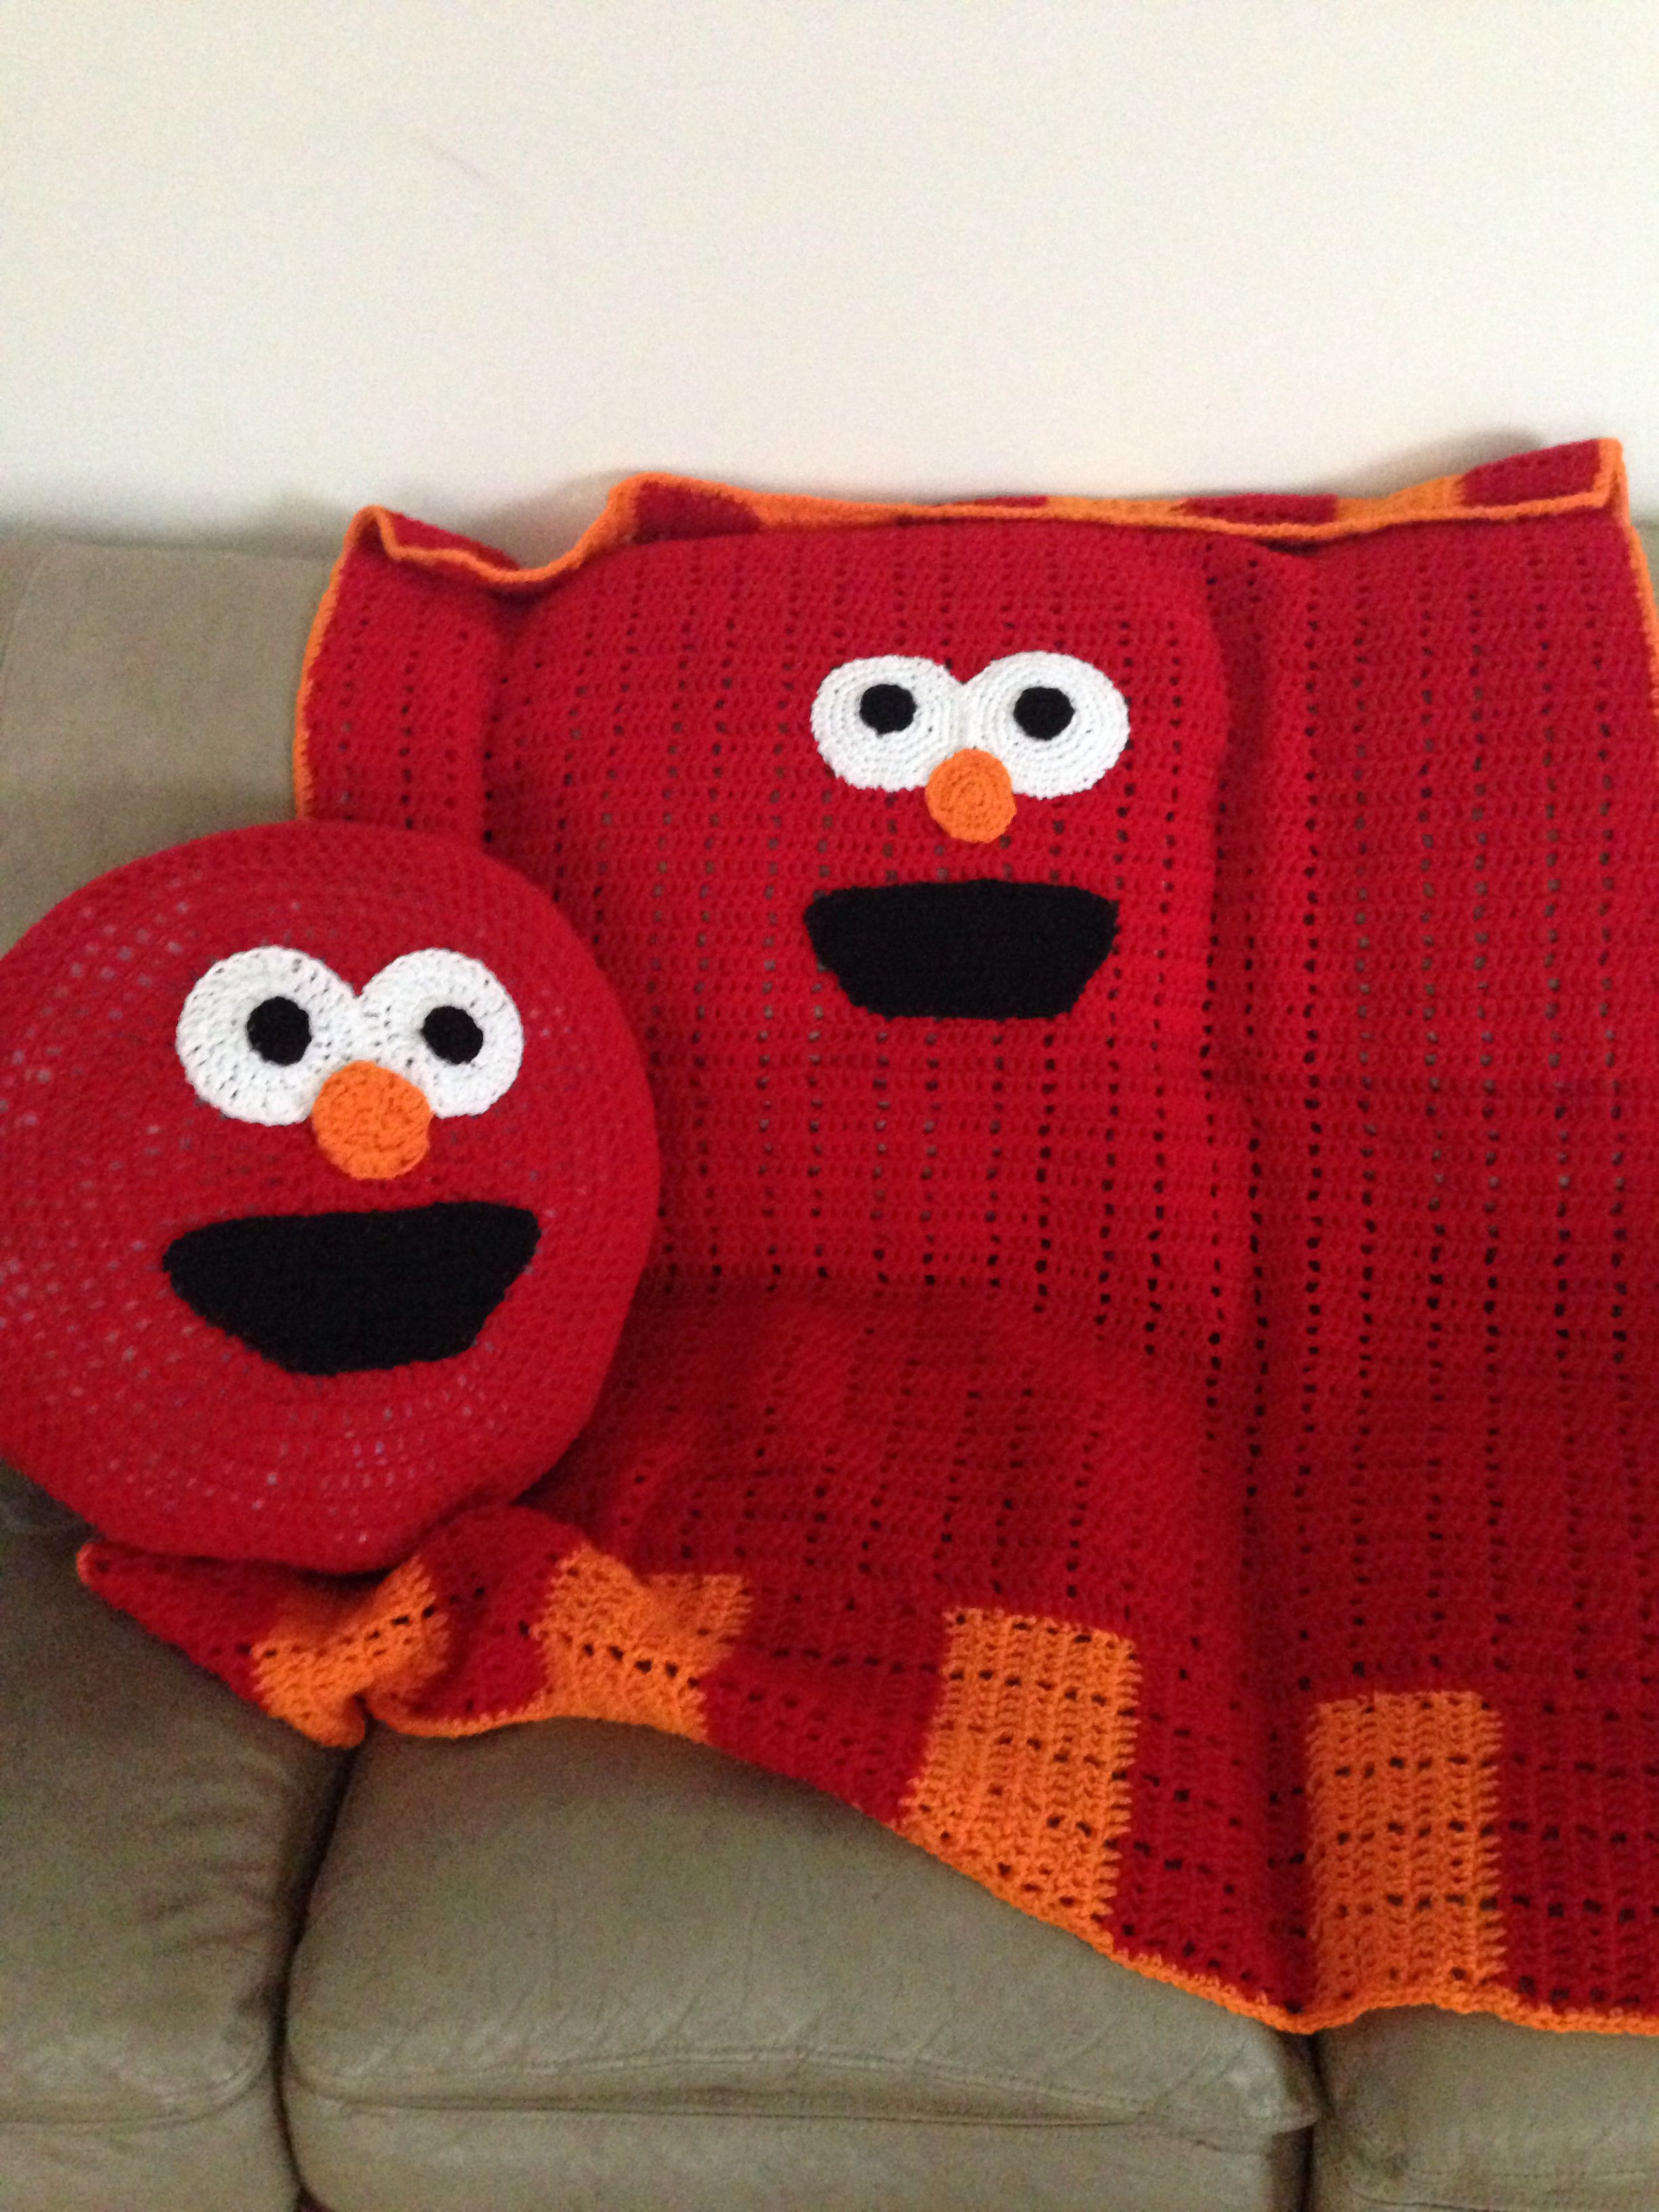 Elmo blanket and pillow   crochet baby afghan's part two ...